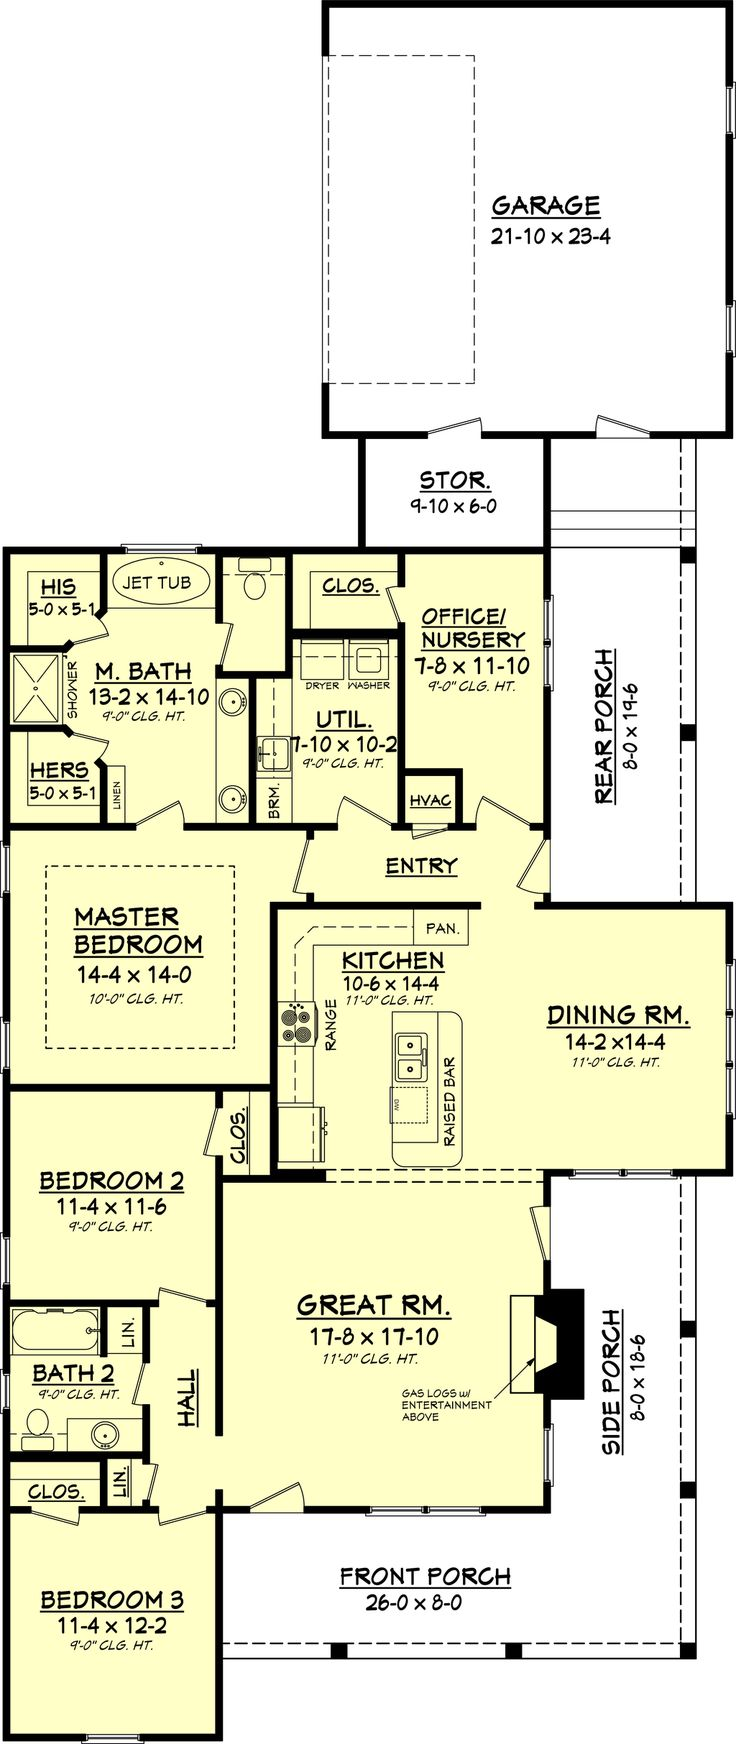 best 25 cottage style house plans ideas on pinterest small country floor plan 1900 s 3 bedroom 2 bath suitable for narrow lot with rear entry garage nice pictures of a completed house really nice floor plan by